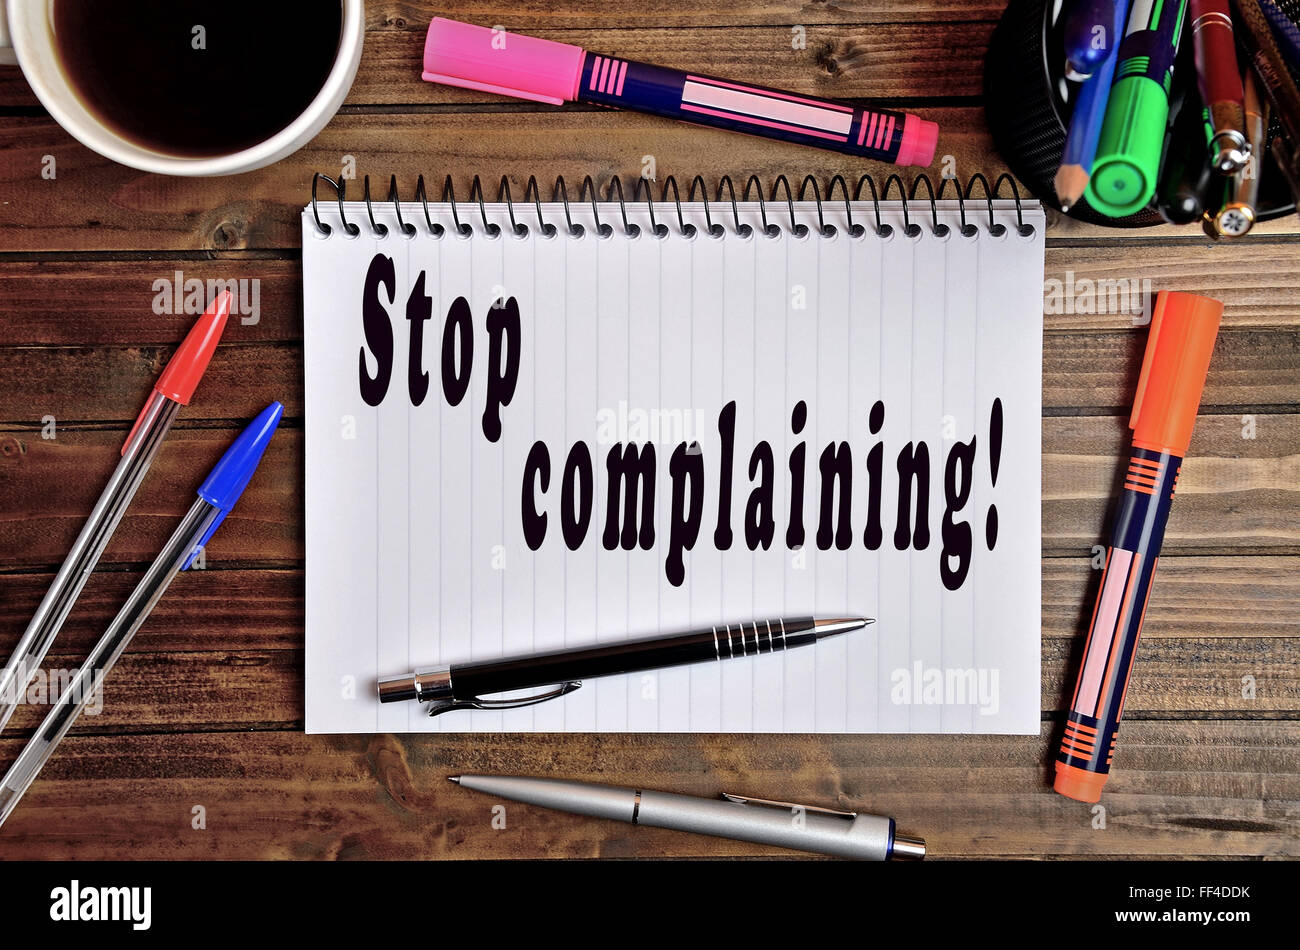 Stop complaining written on notebook - Stock Image